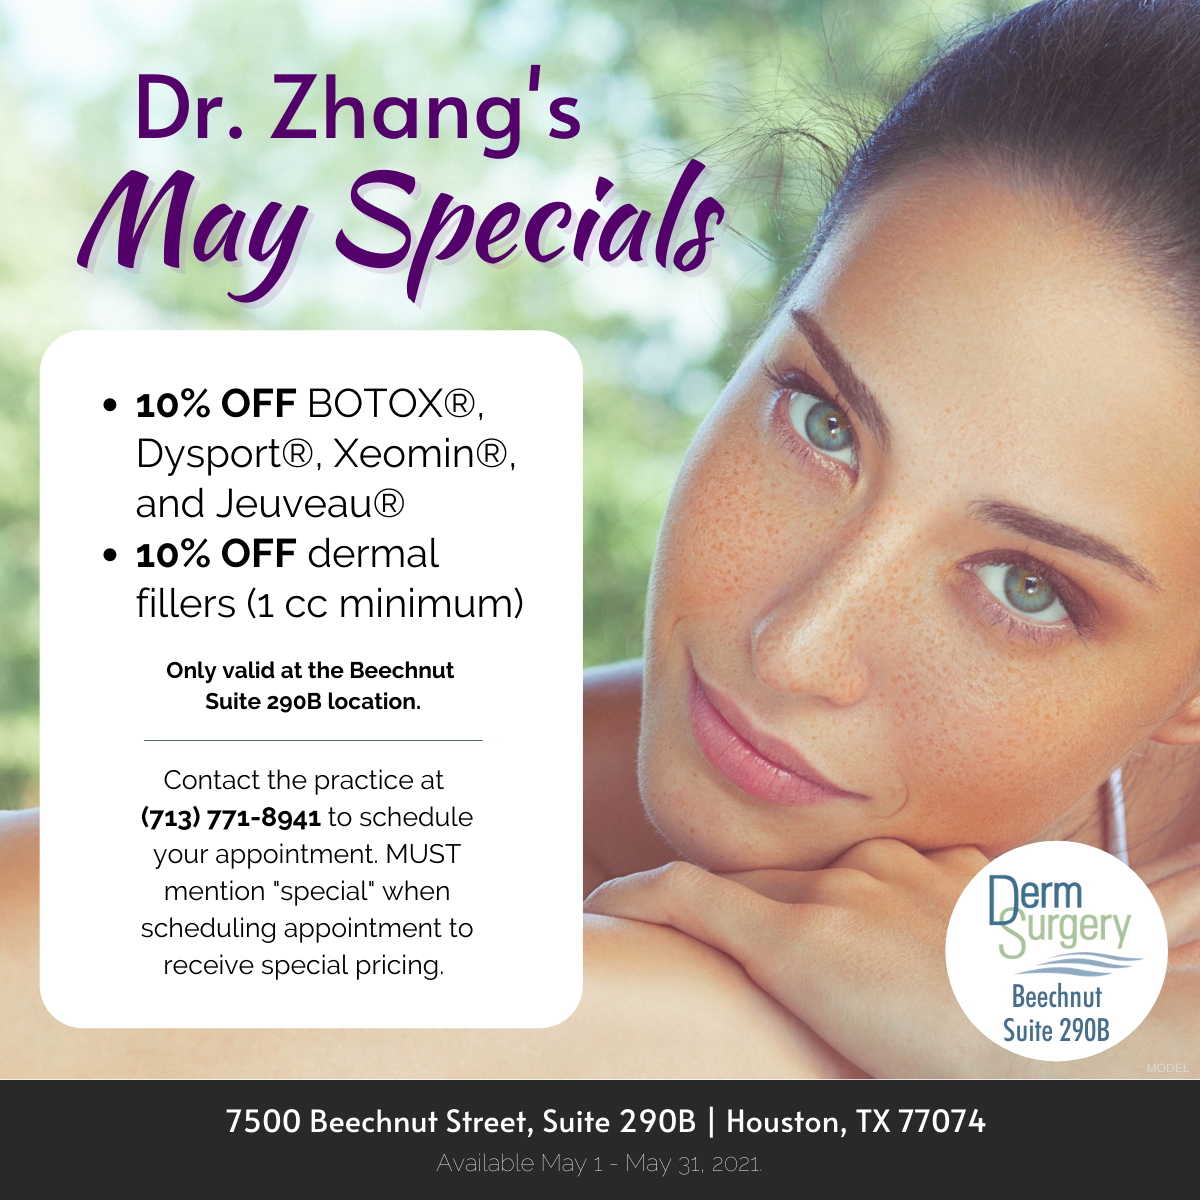 Dr. Zhang's May Specials